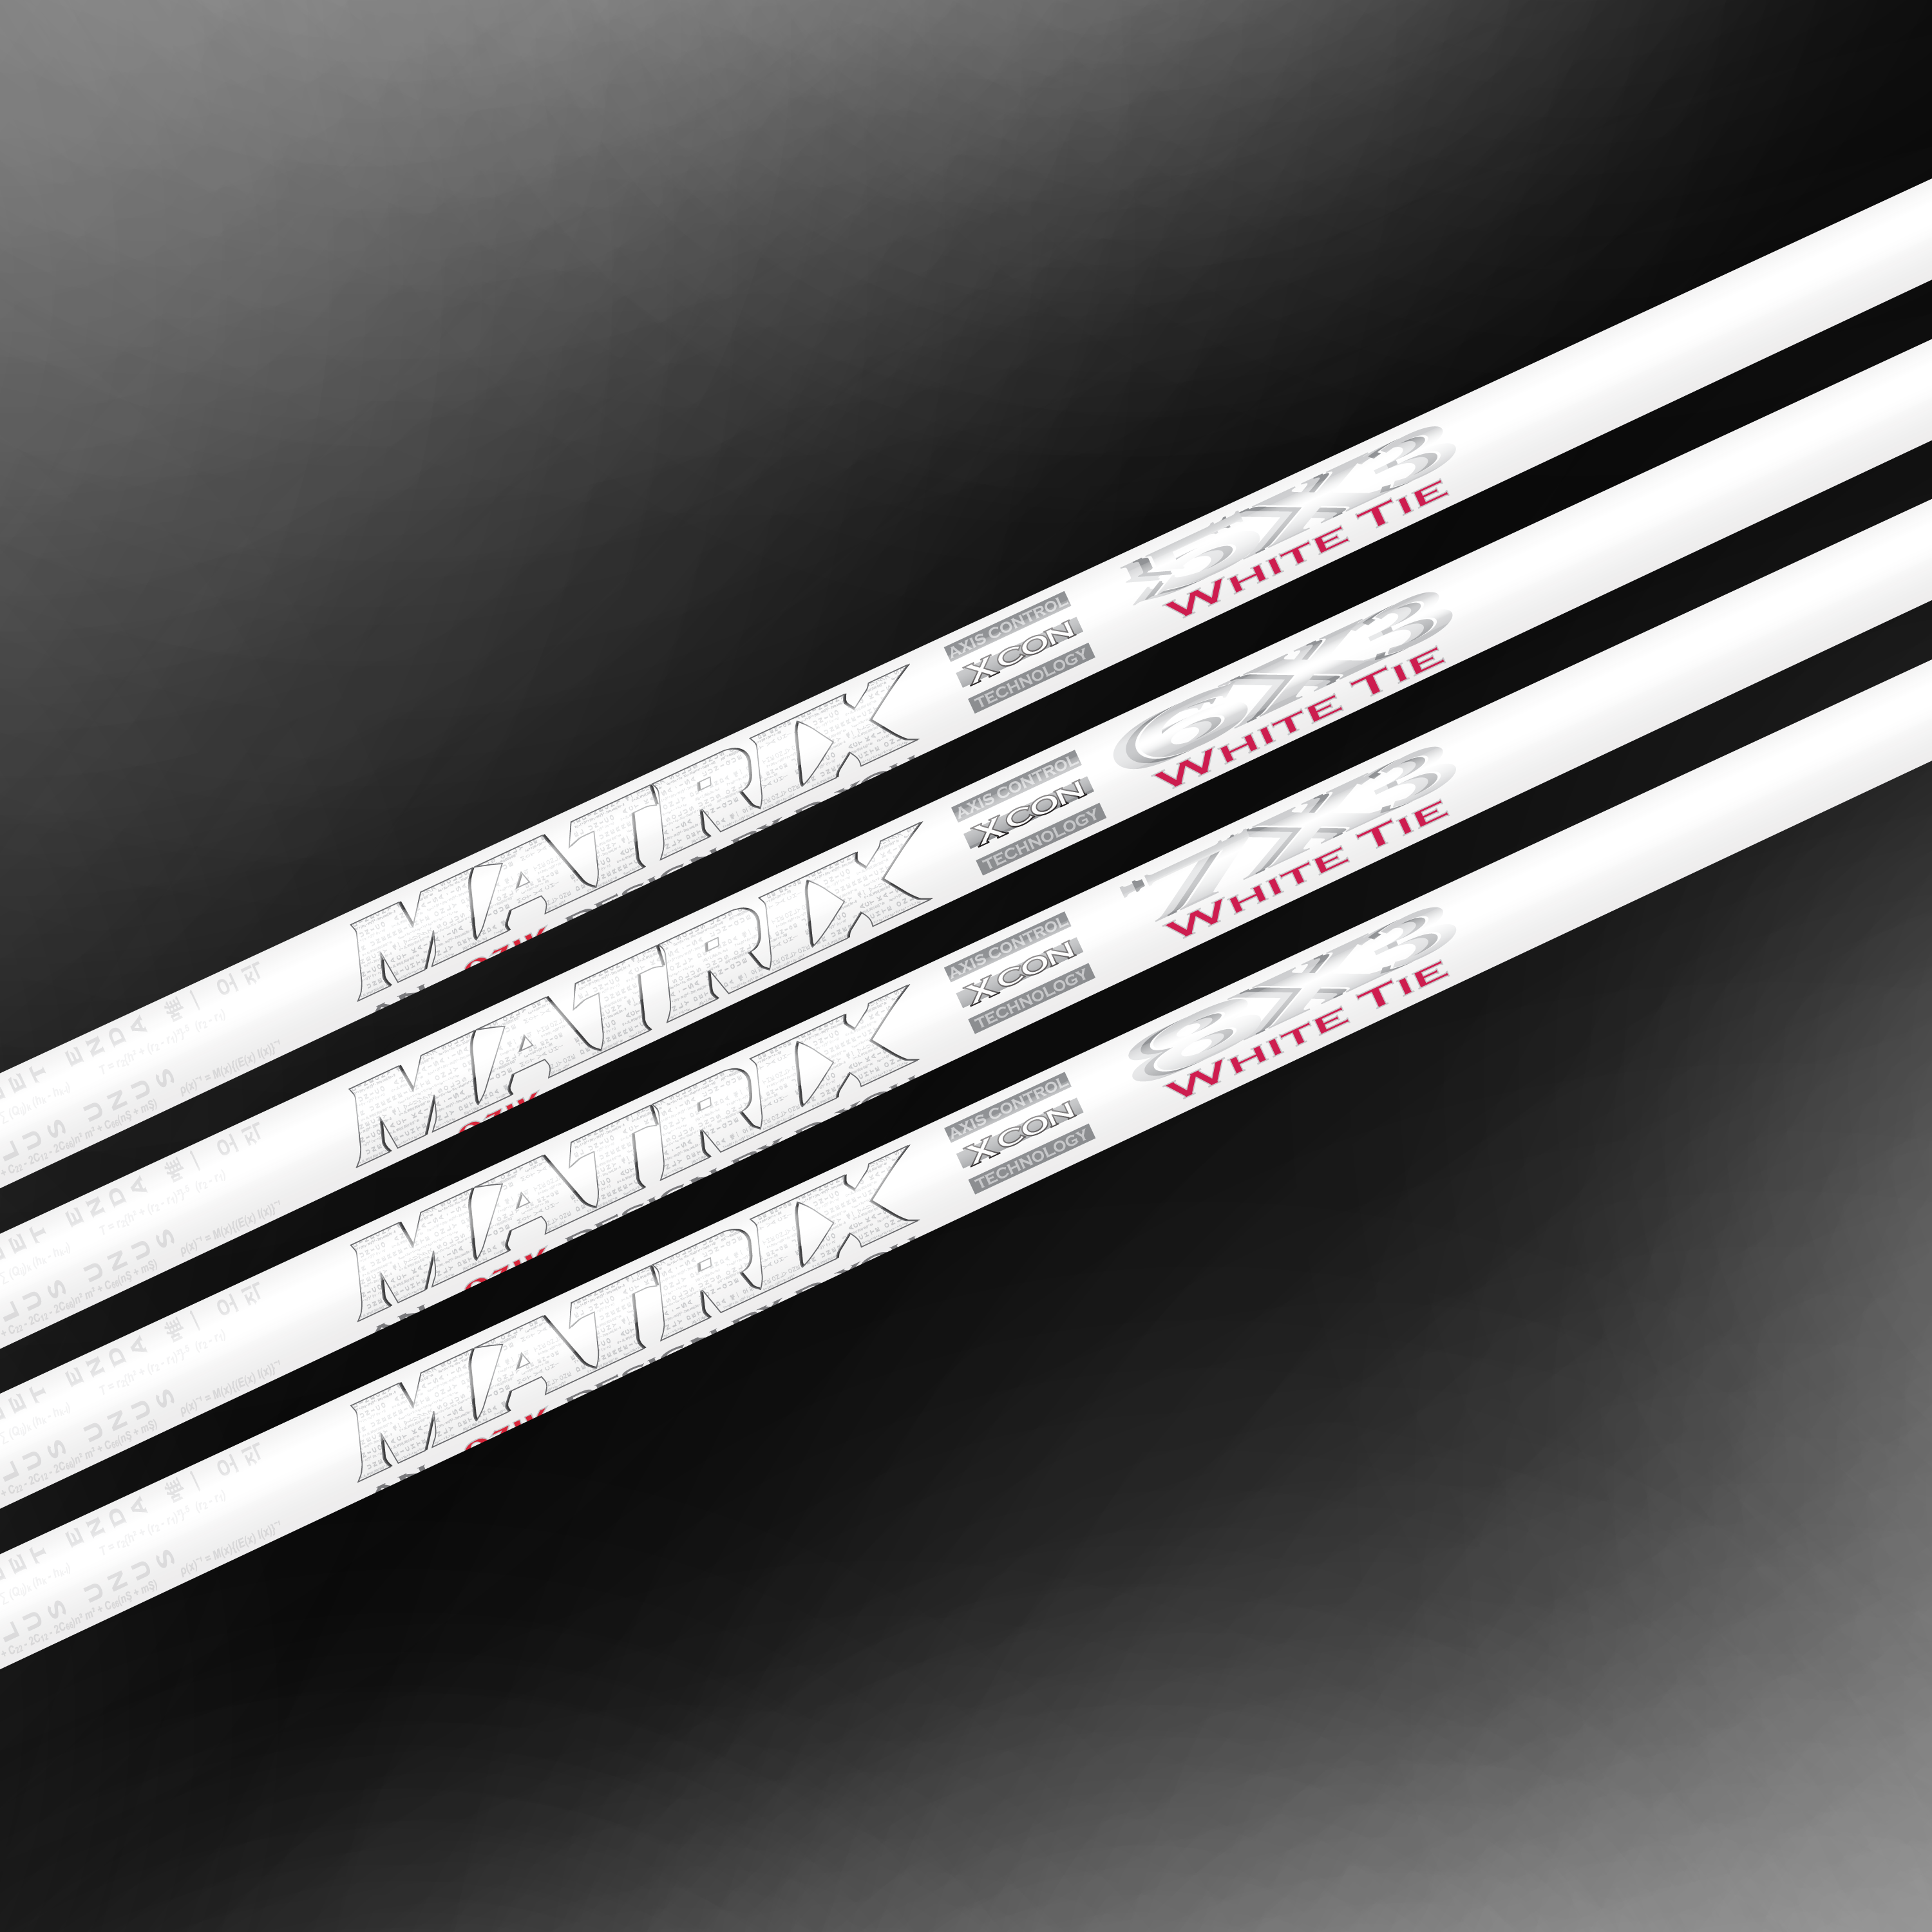 Matrix White Tie Golf Shaft